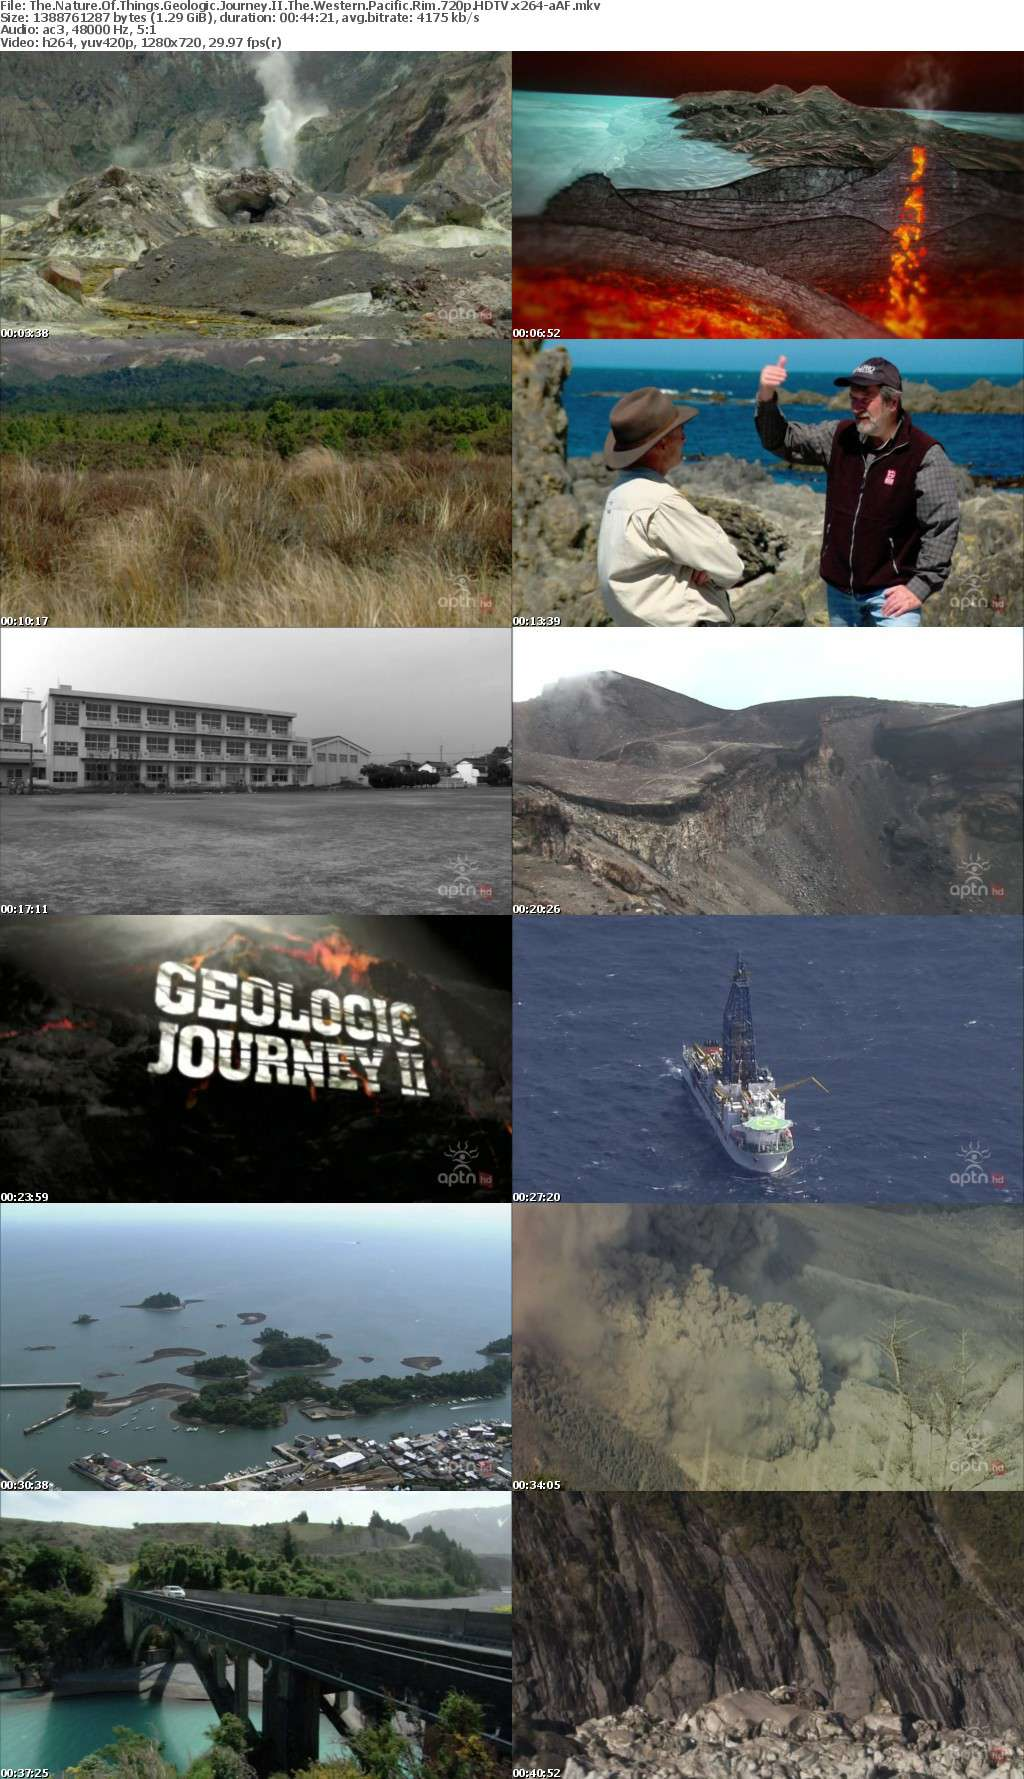 The Nature Of Things Geologic Journey II The Western Pacific Rim 720p HDTV x264-aAF